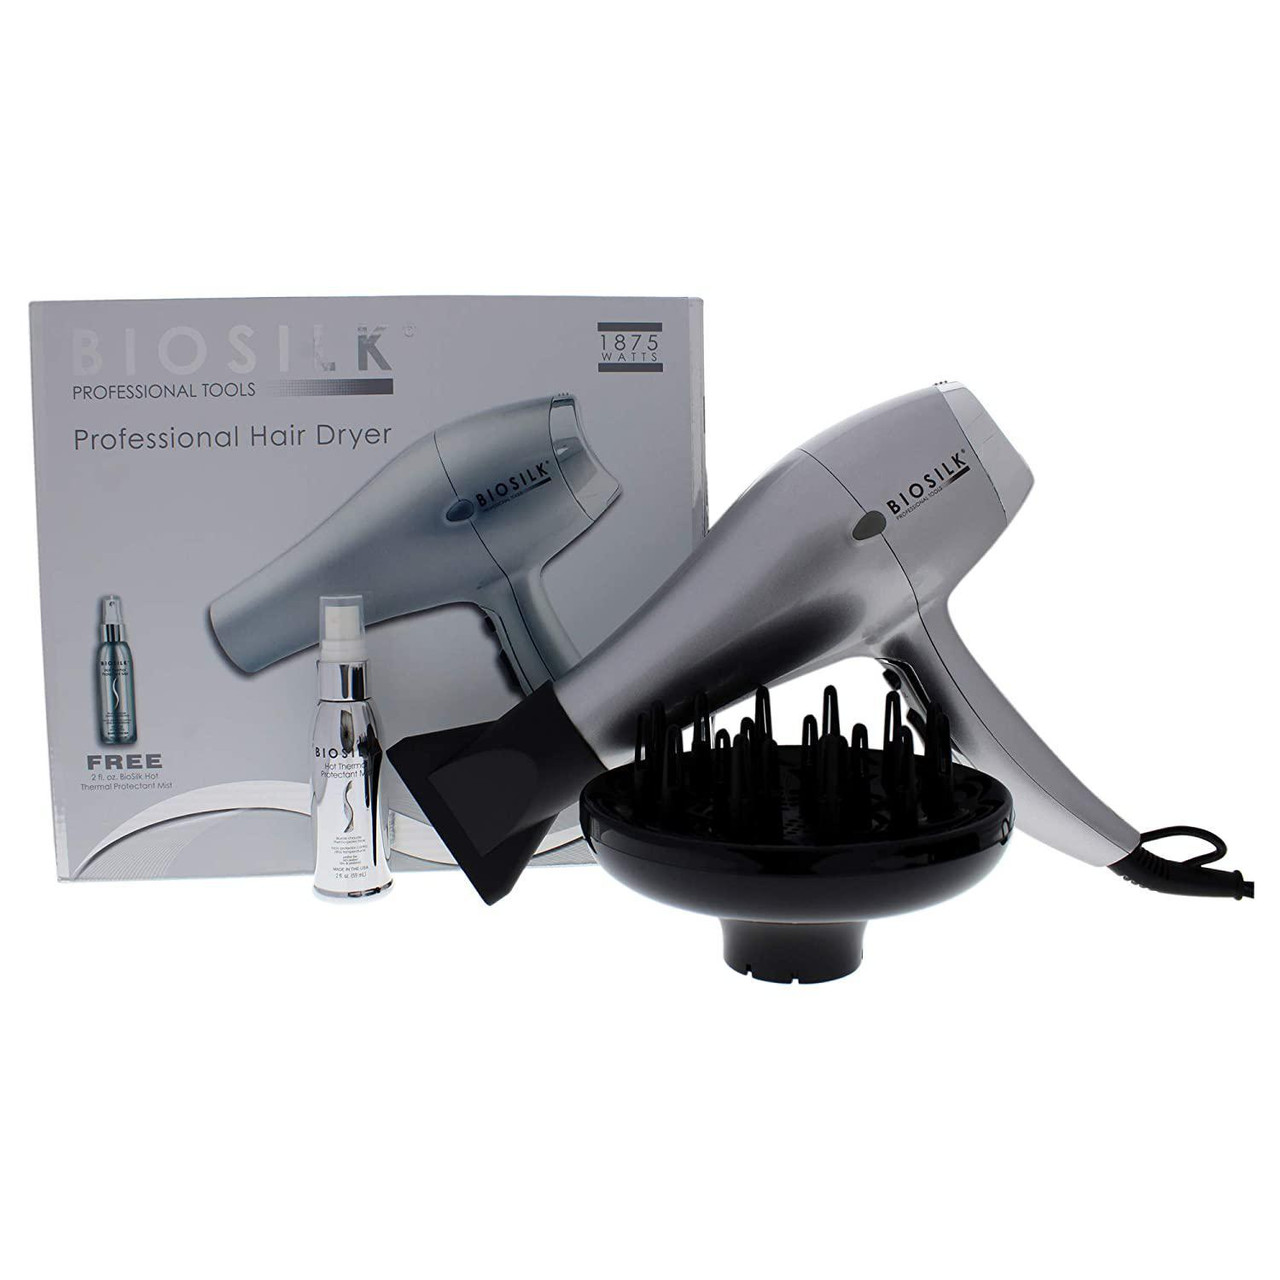 BioSilk Professional Hair Dryer 1875W - Special Buy - While Supplies Last!